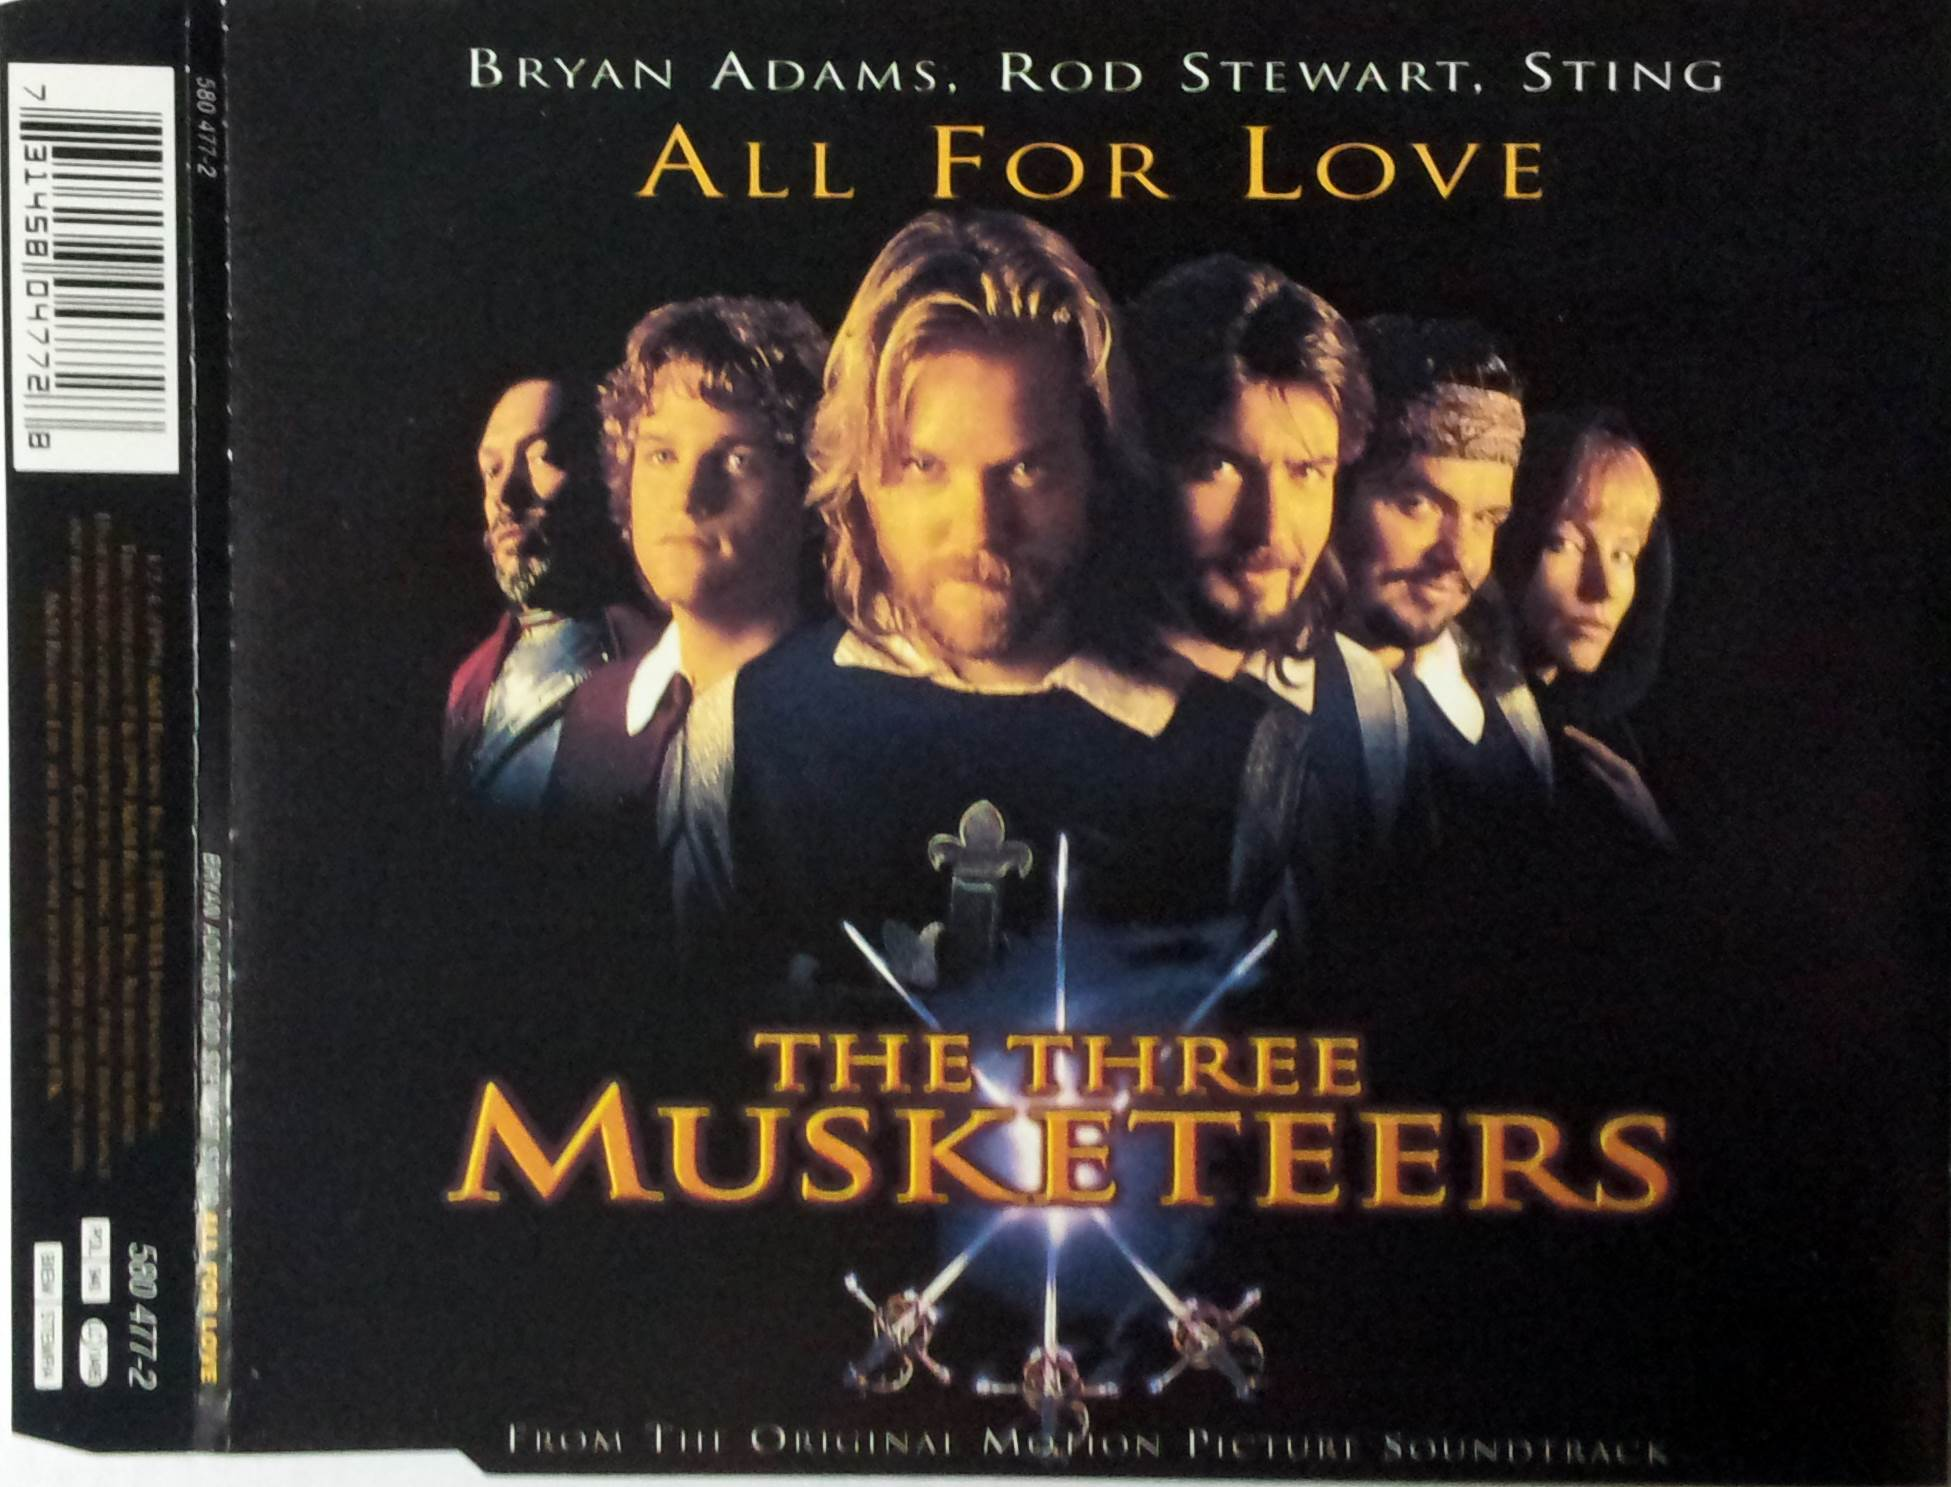 All for love (Soundtrack Three Musketeers)